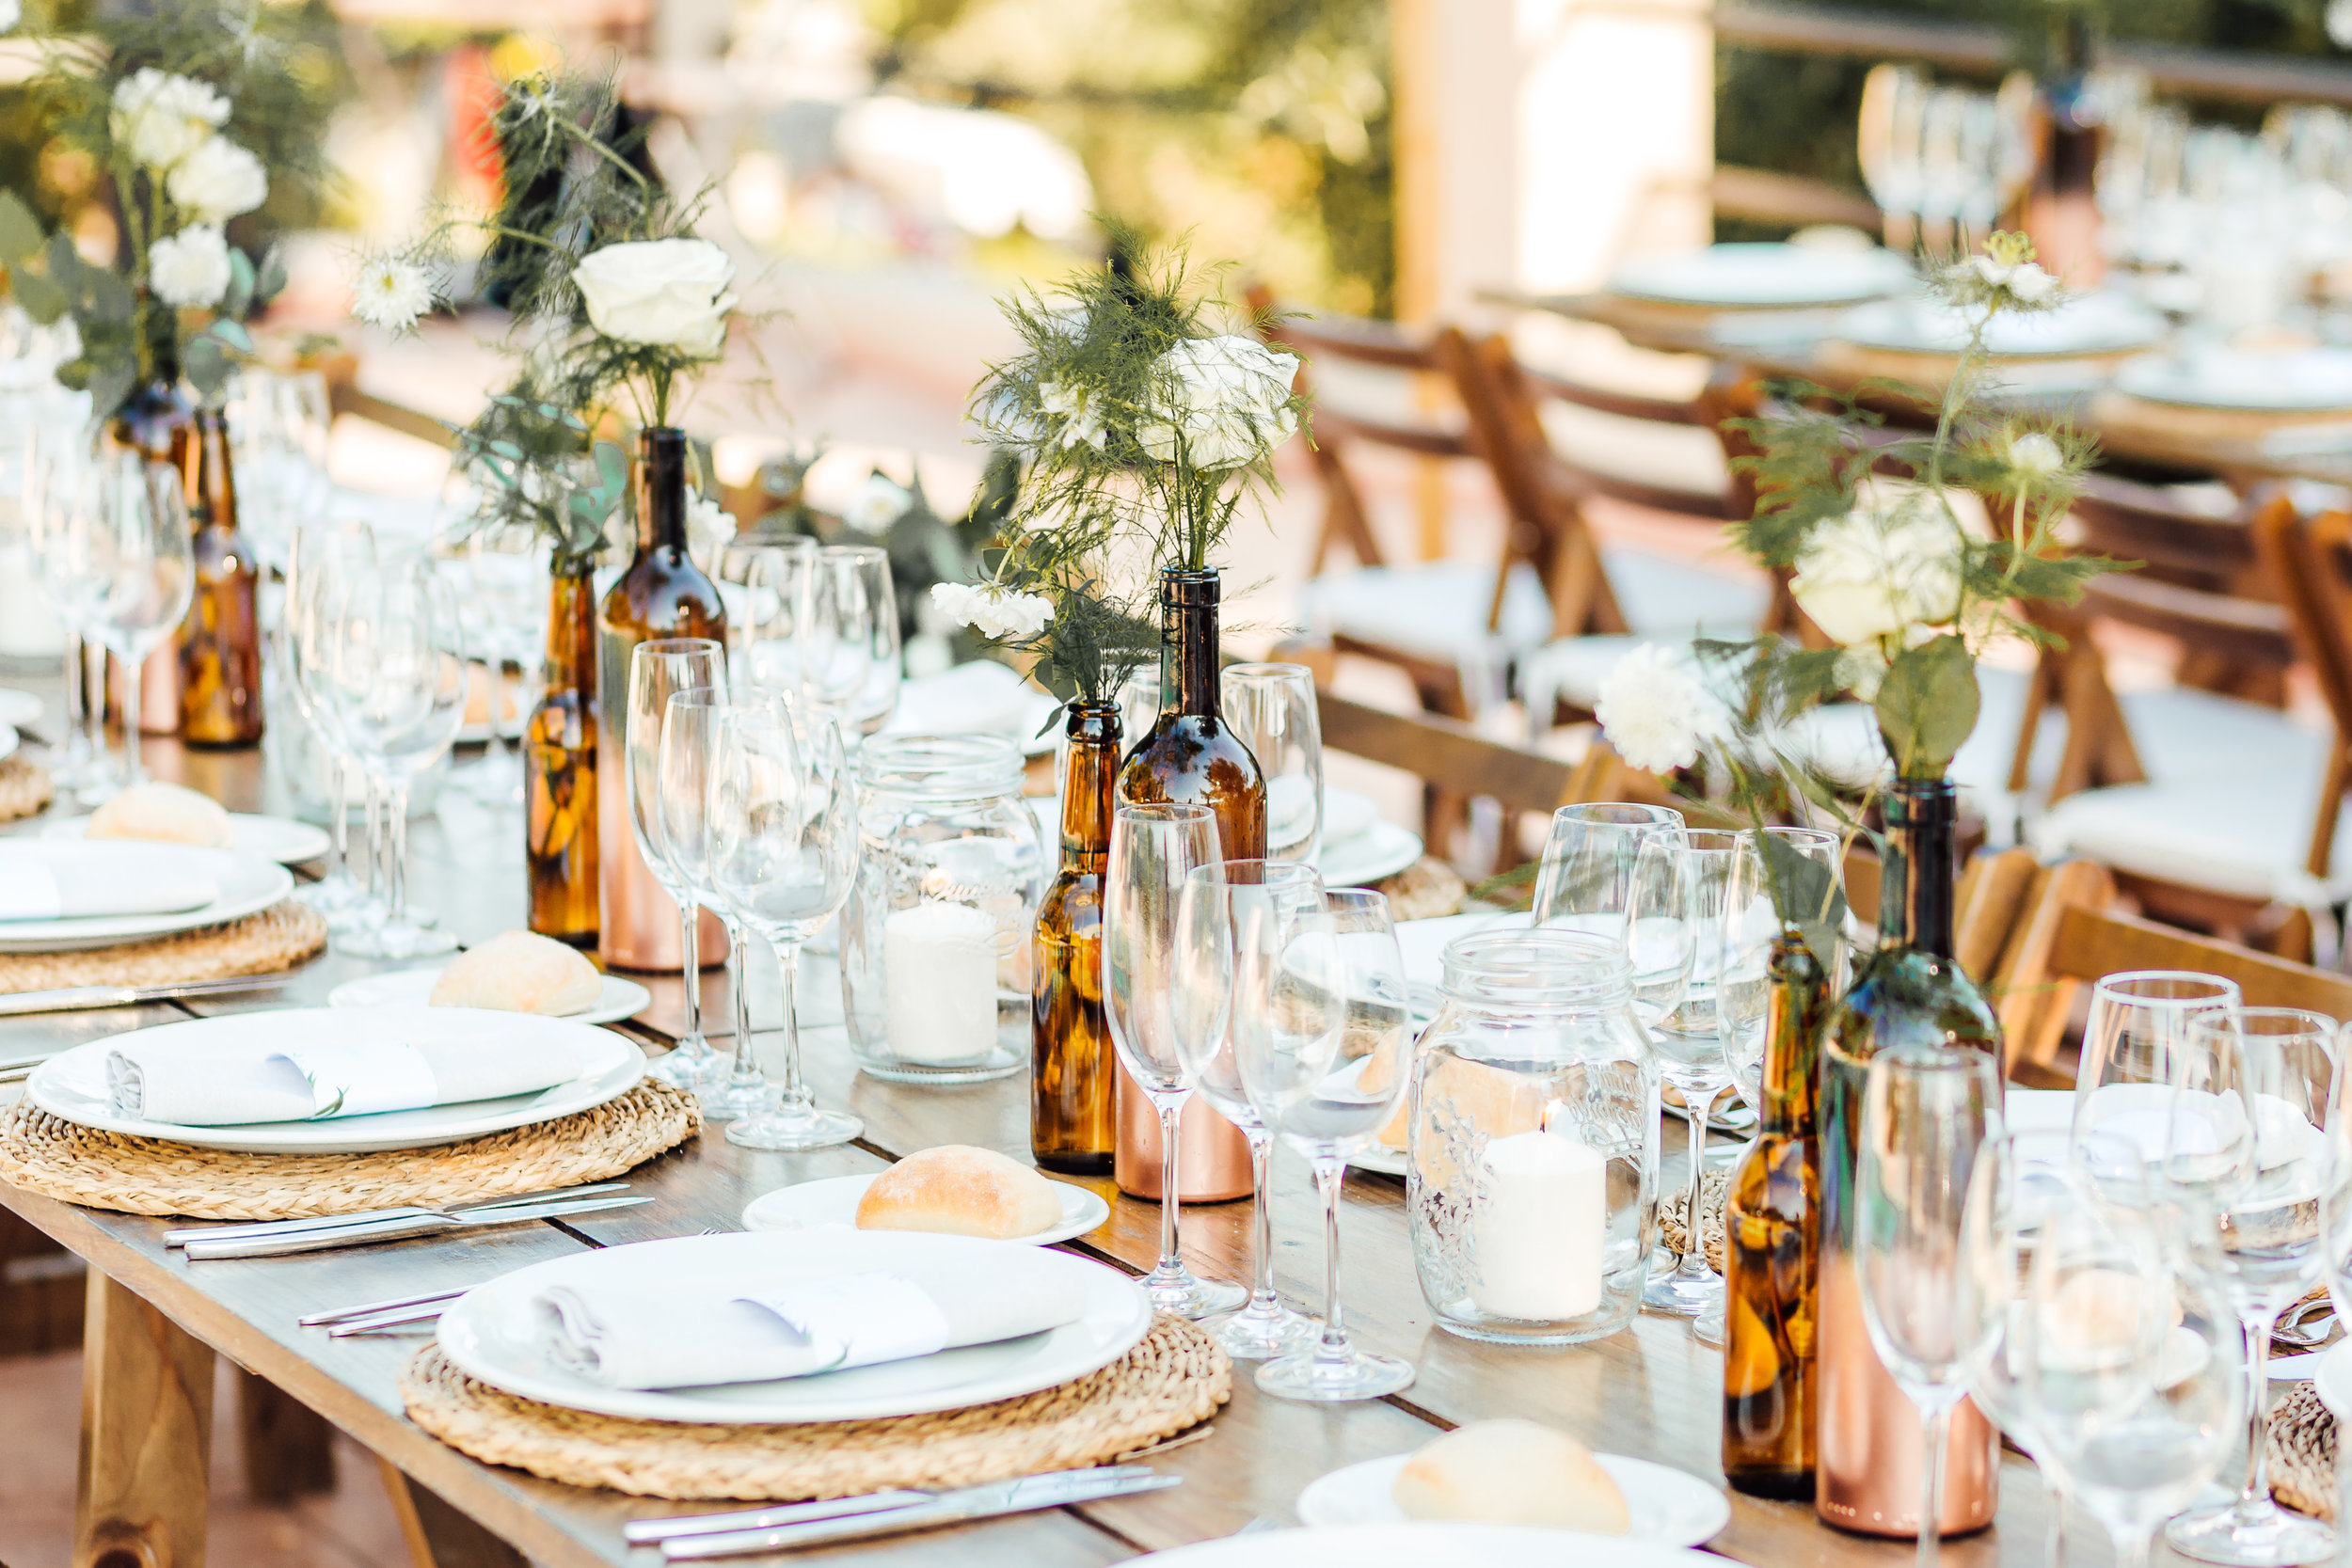 Love these up cycled bottles for wedding table decor - by pip at philippa events at the very cute Masa Santo in Cunit